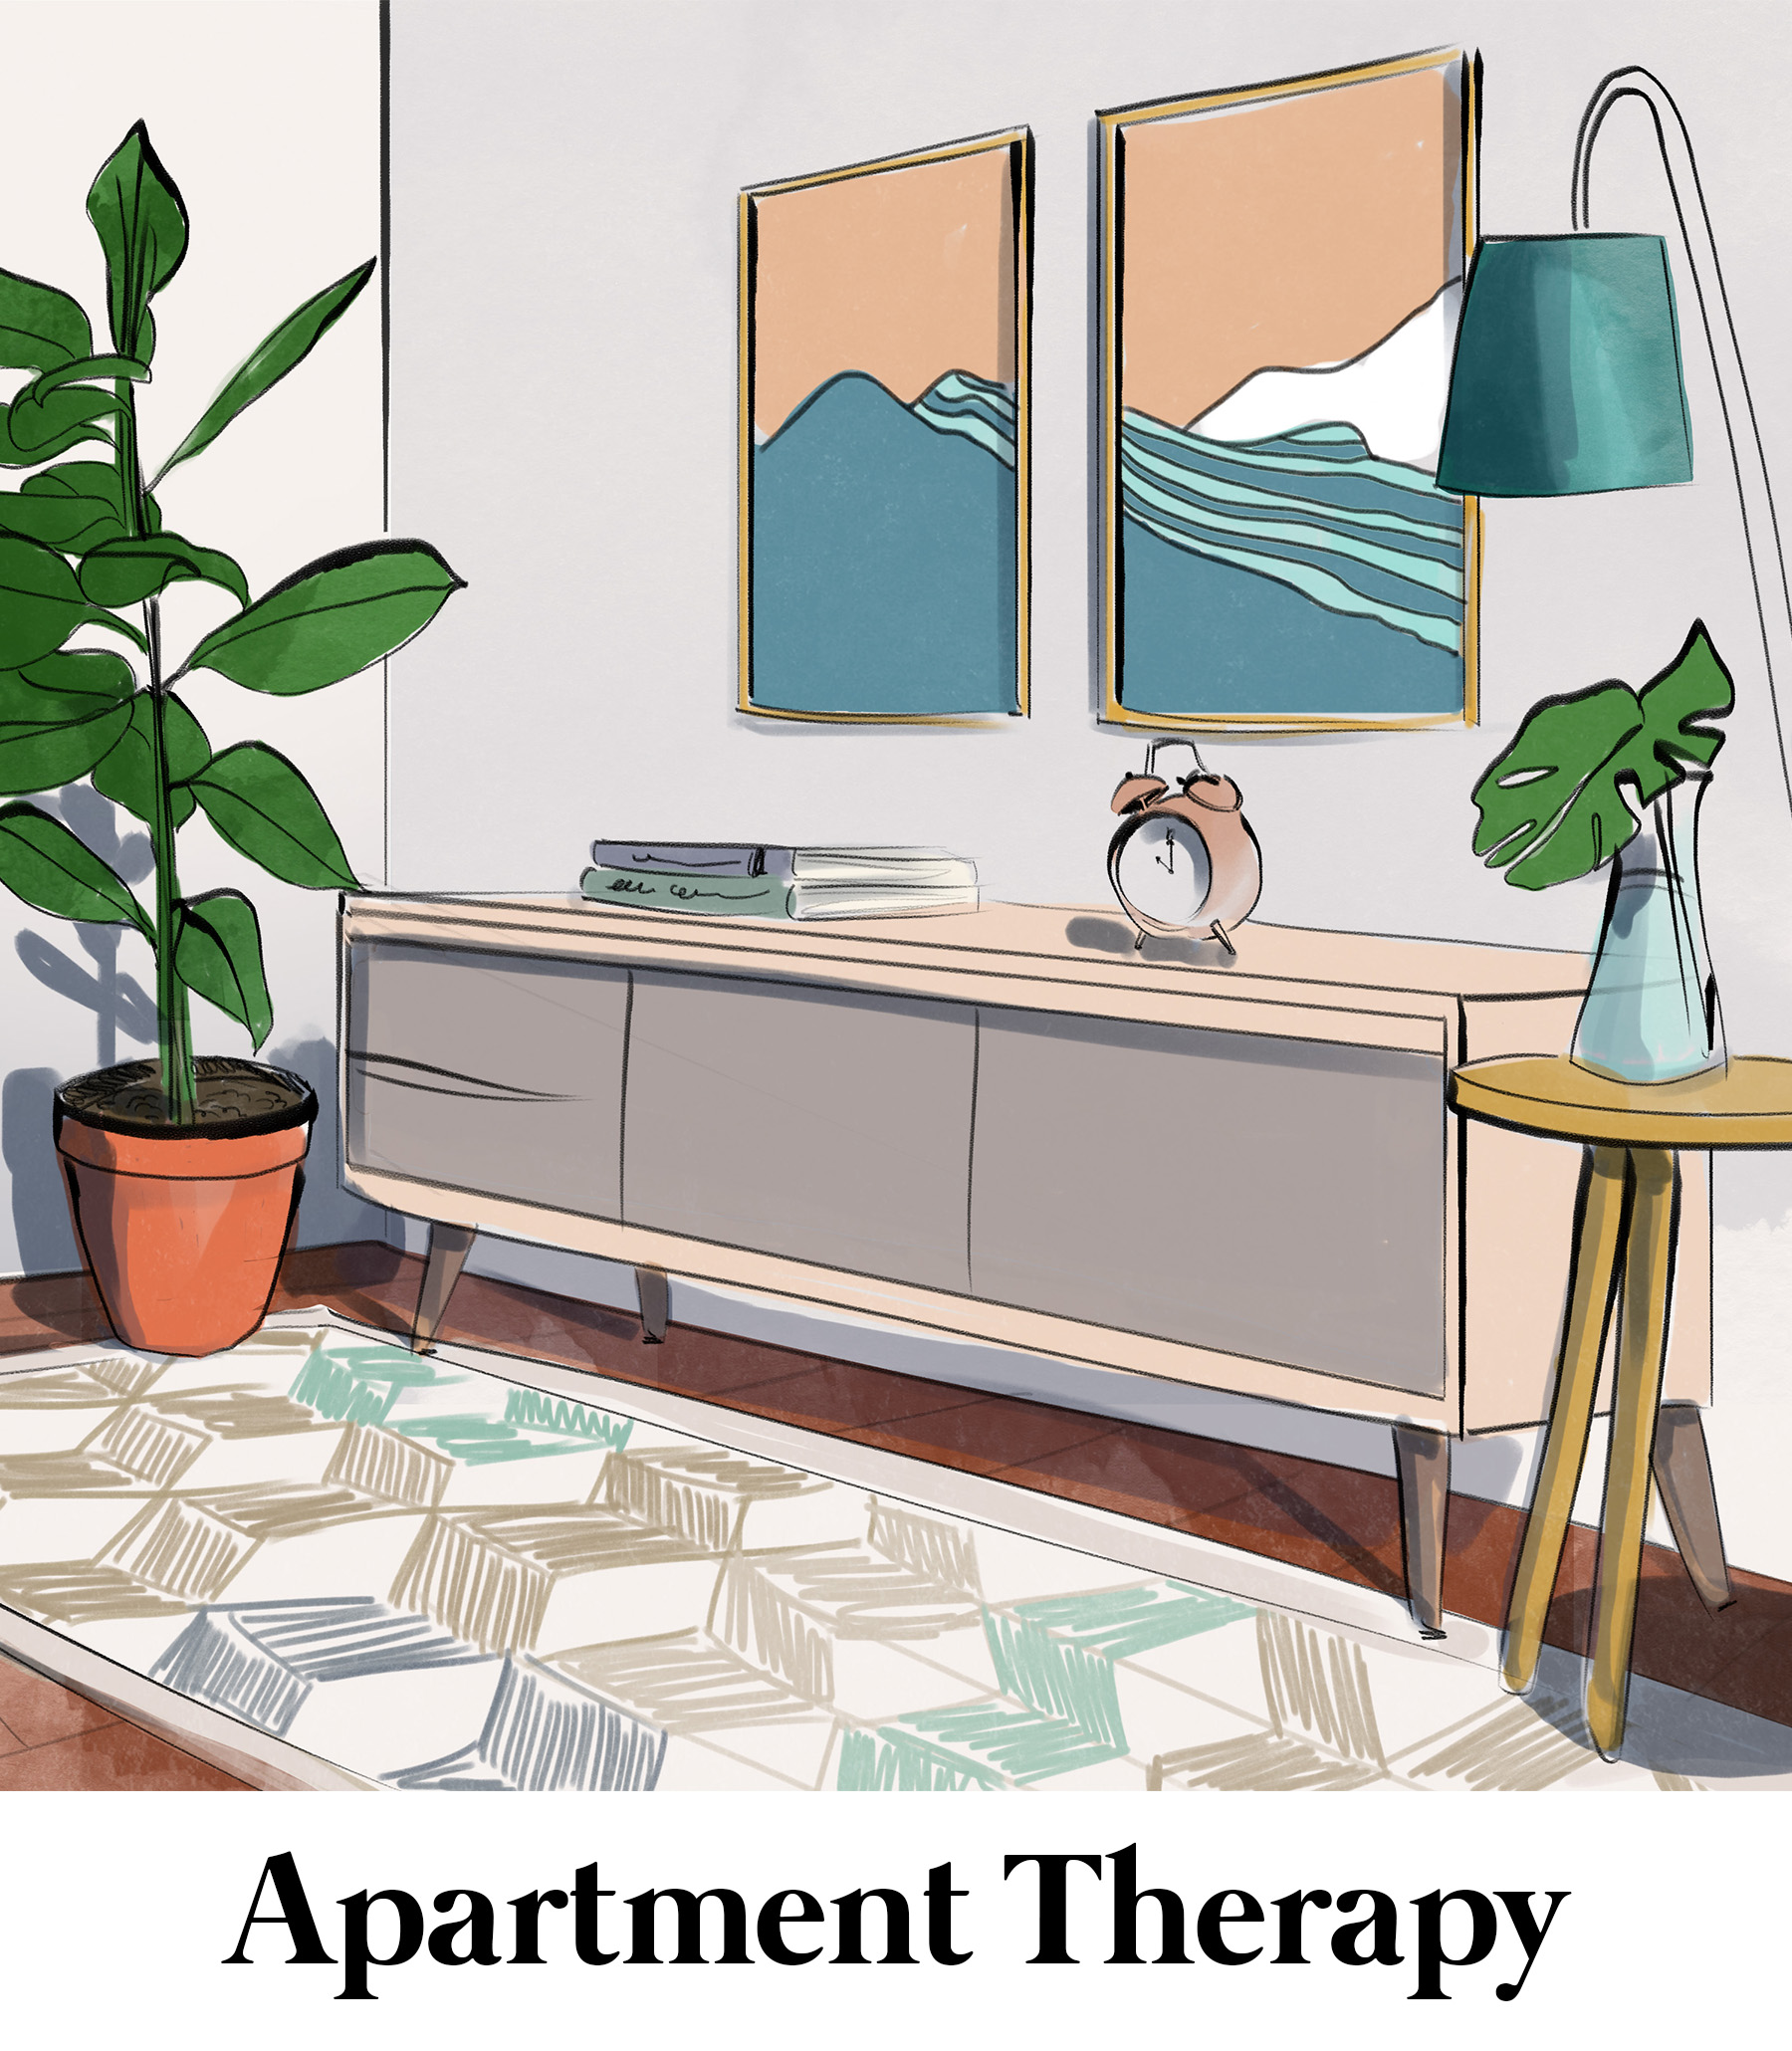 Amber Day, Apartment Therapy